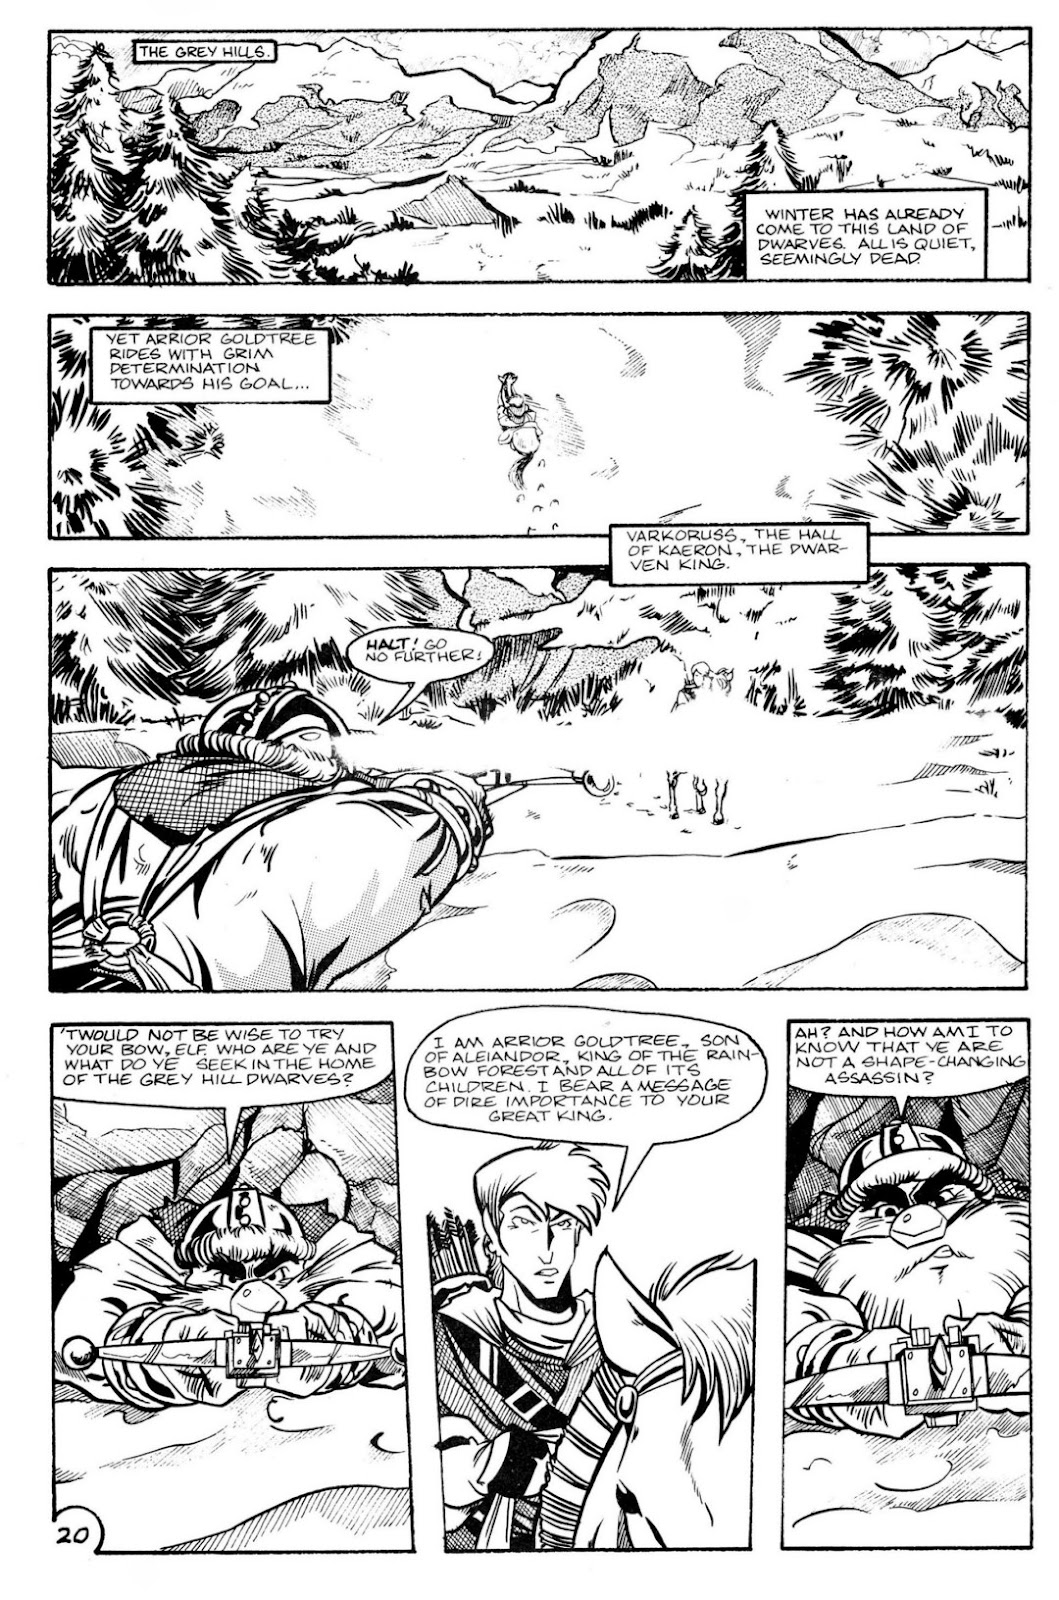 The Realm (1986) issue 8 - Page 22